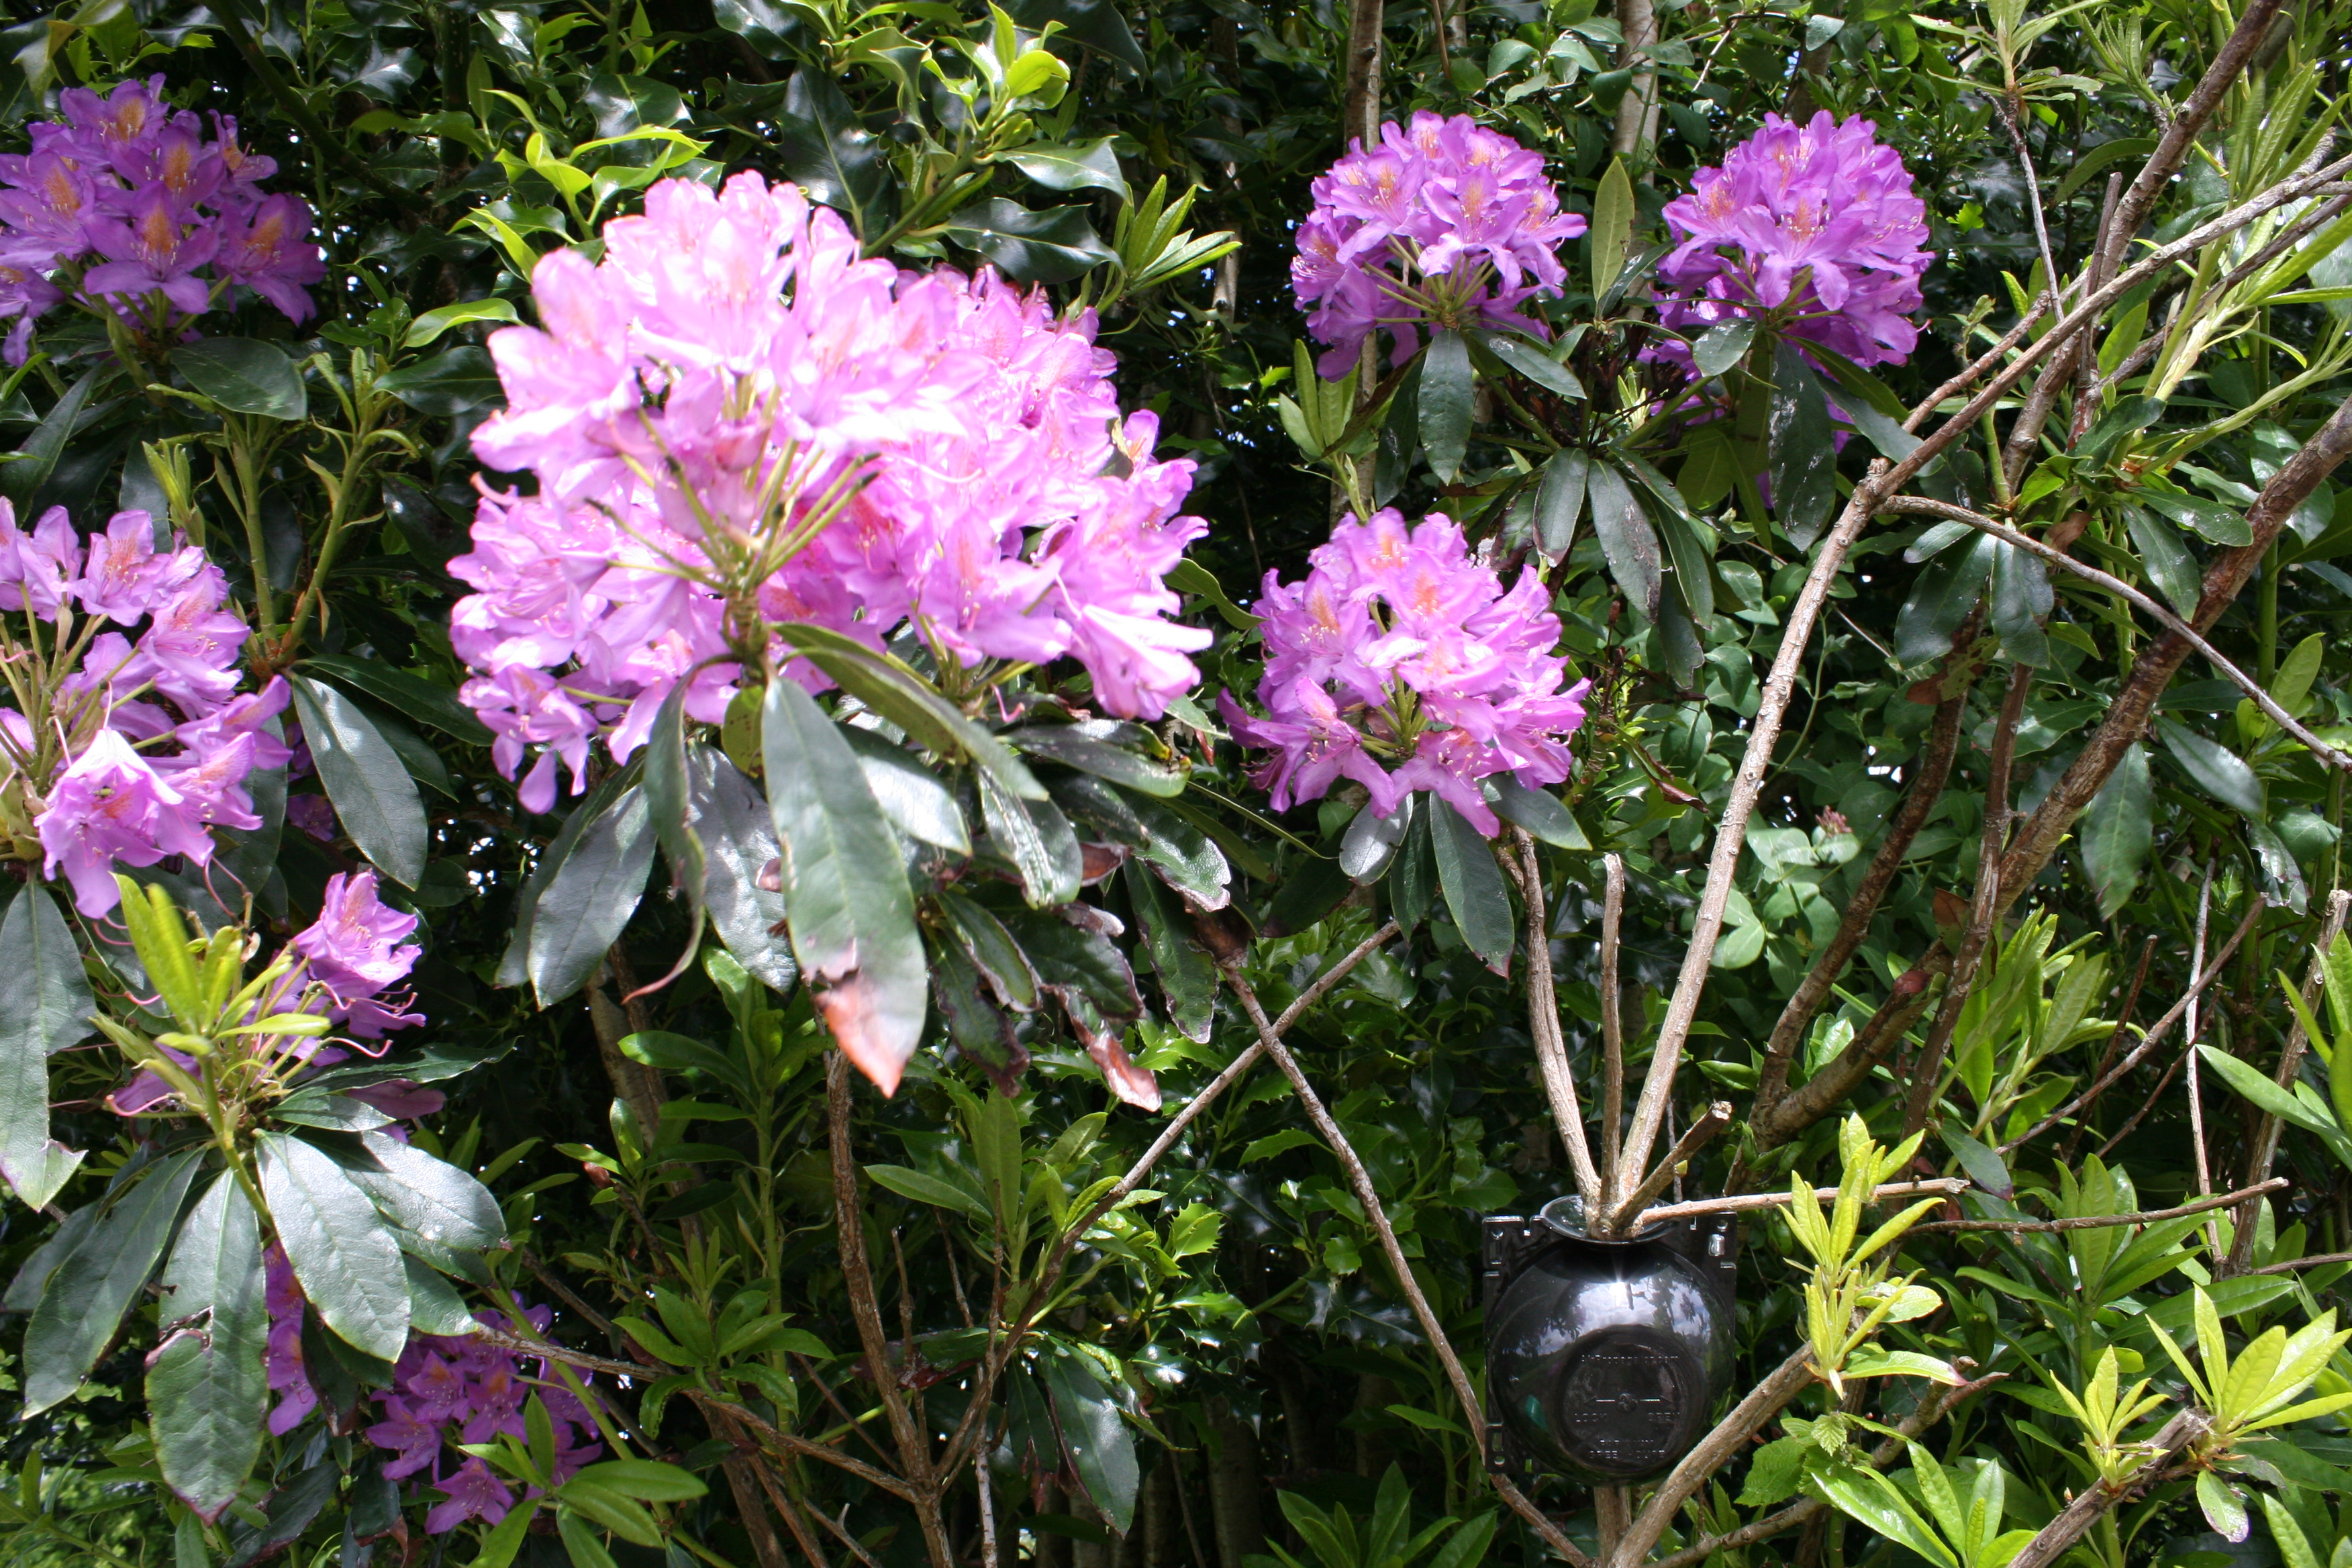 Cloning Rhododendron and Propagating Rhododendron